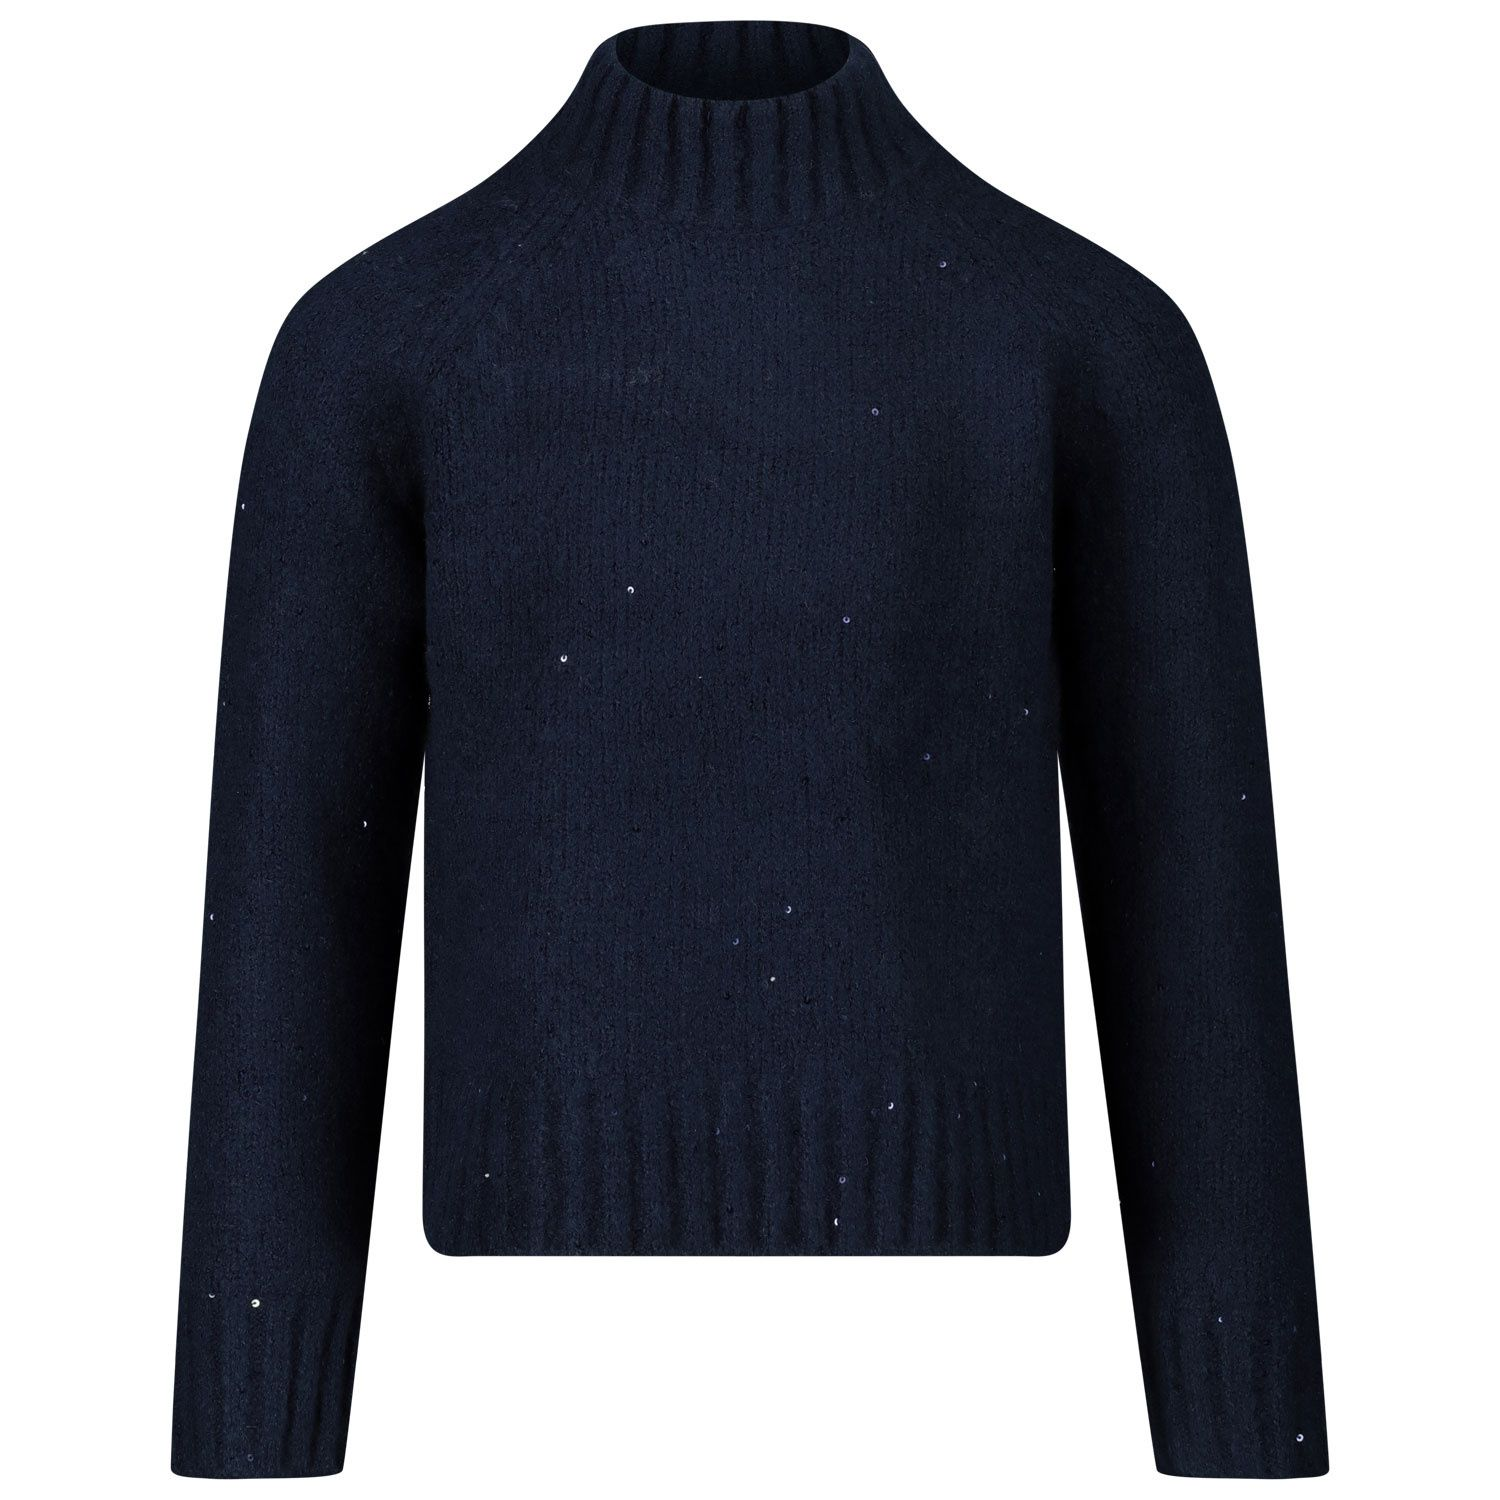 Picture of Mayoral 4342 kids sweater navy